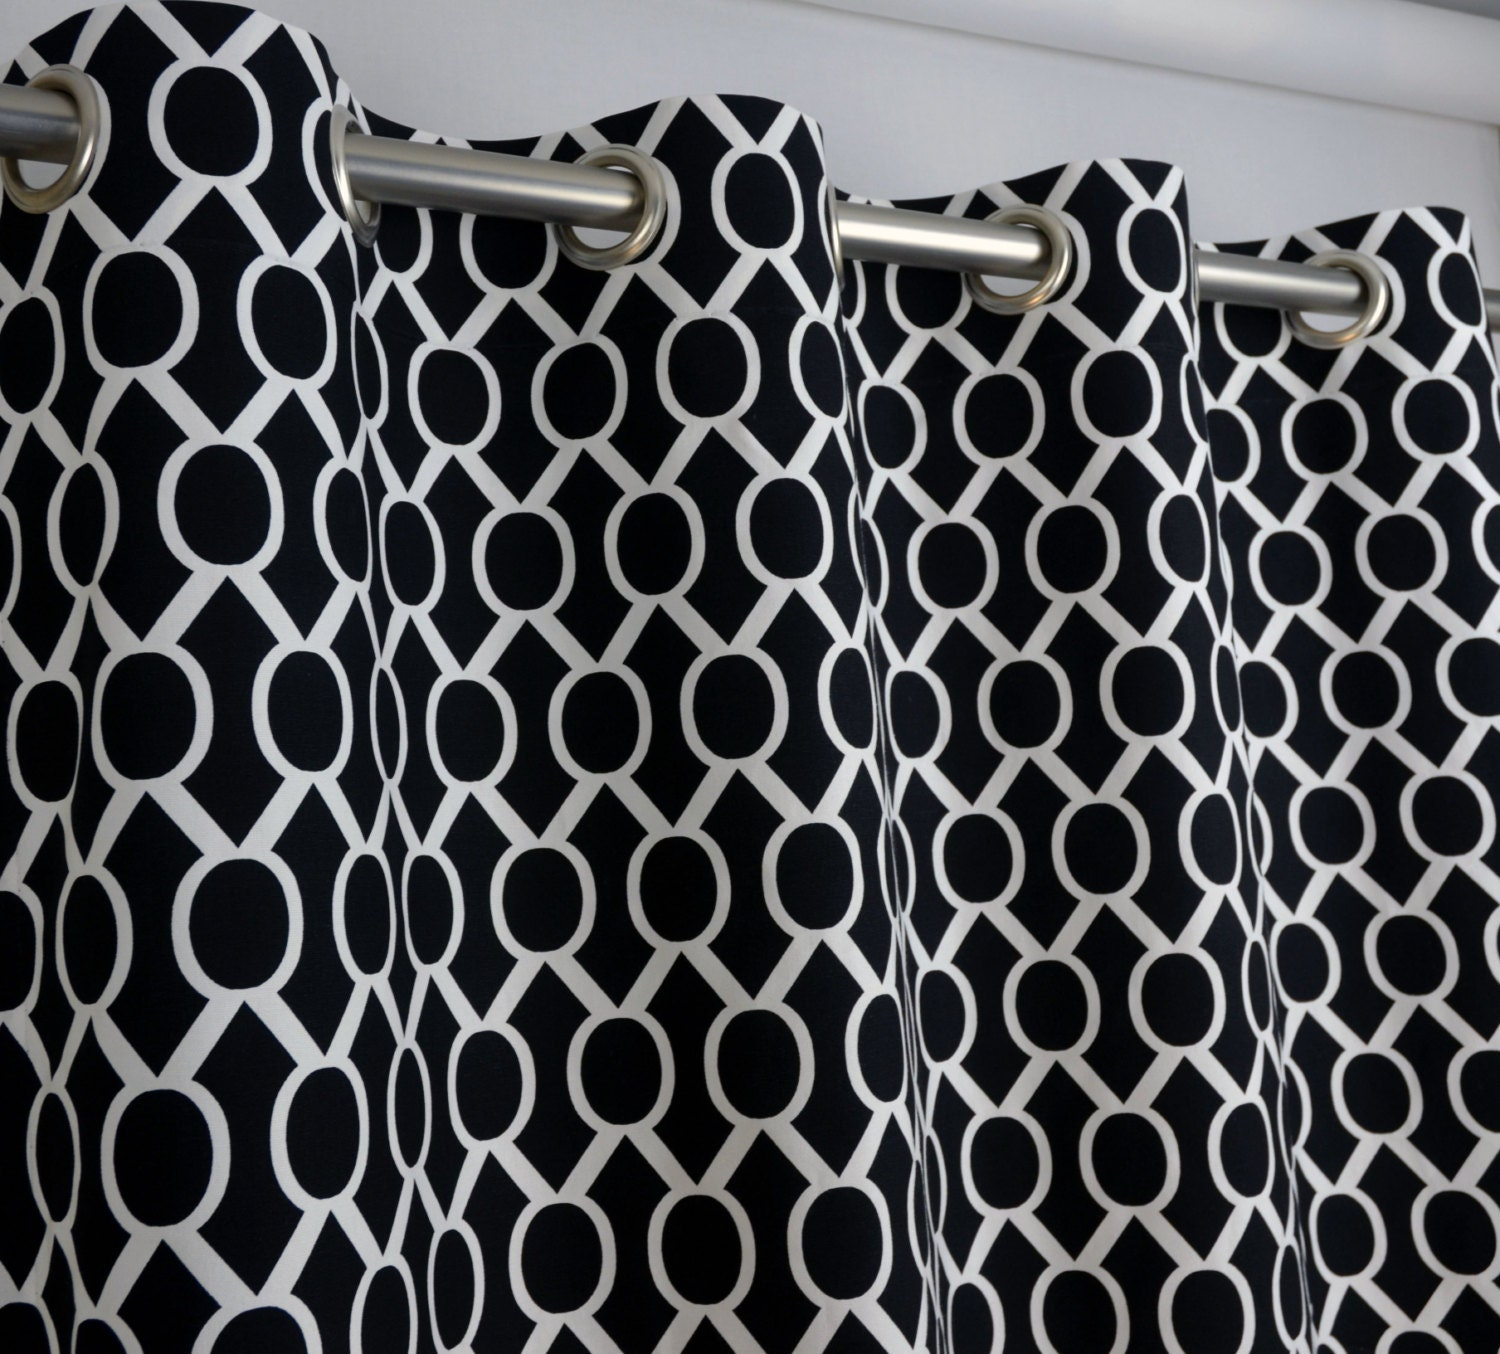 pair of grommet top curtains in black and white by zeldabelle